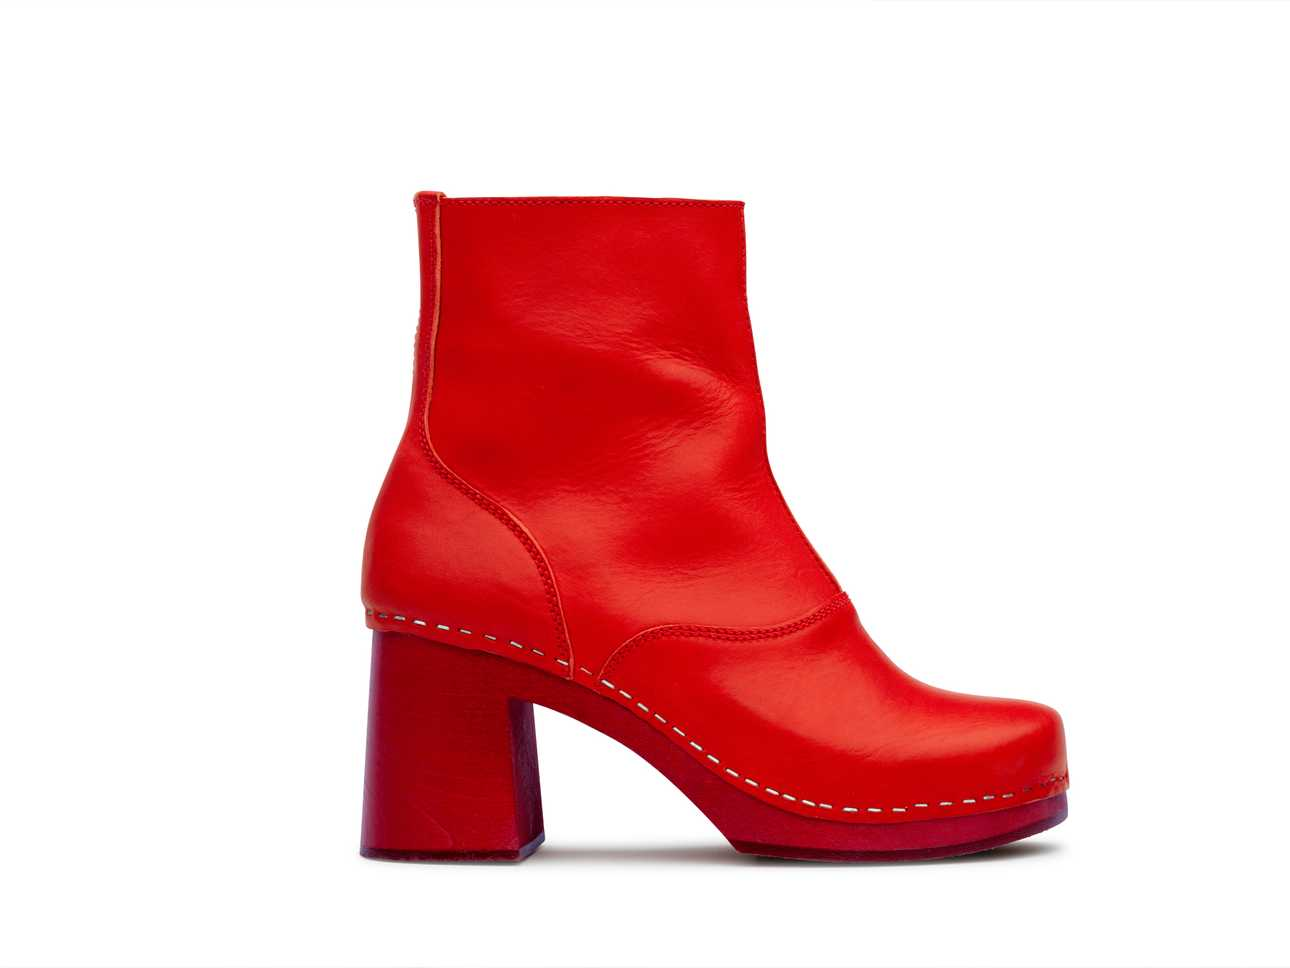 60's boot Red/red sole